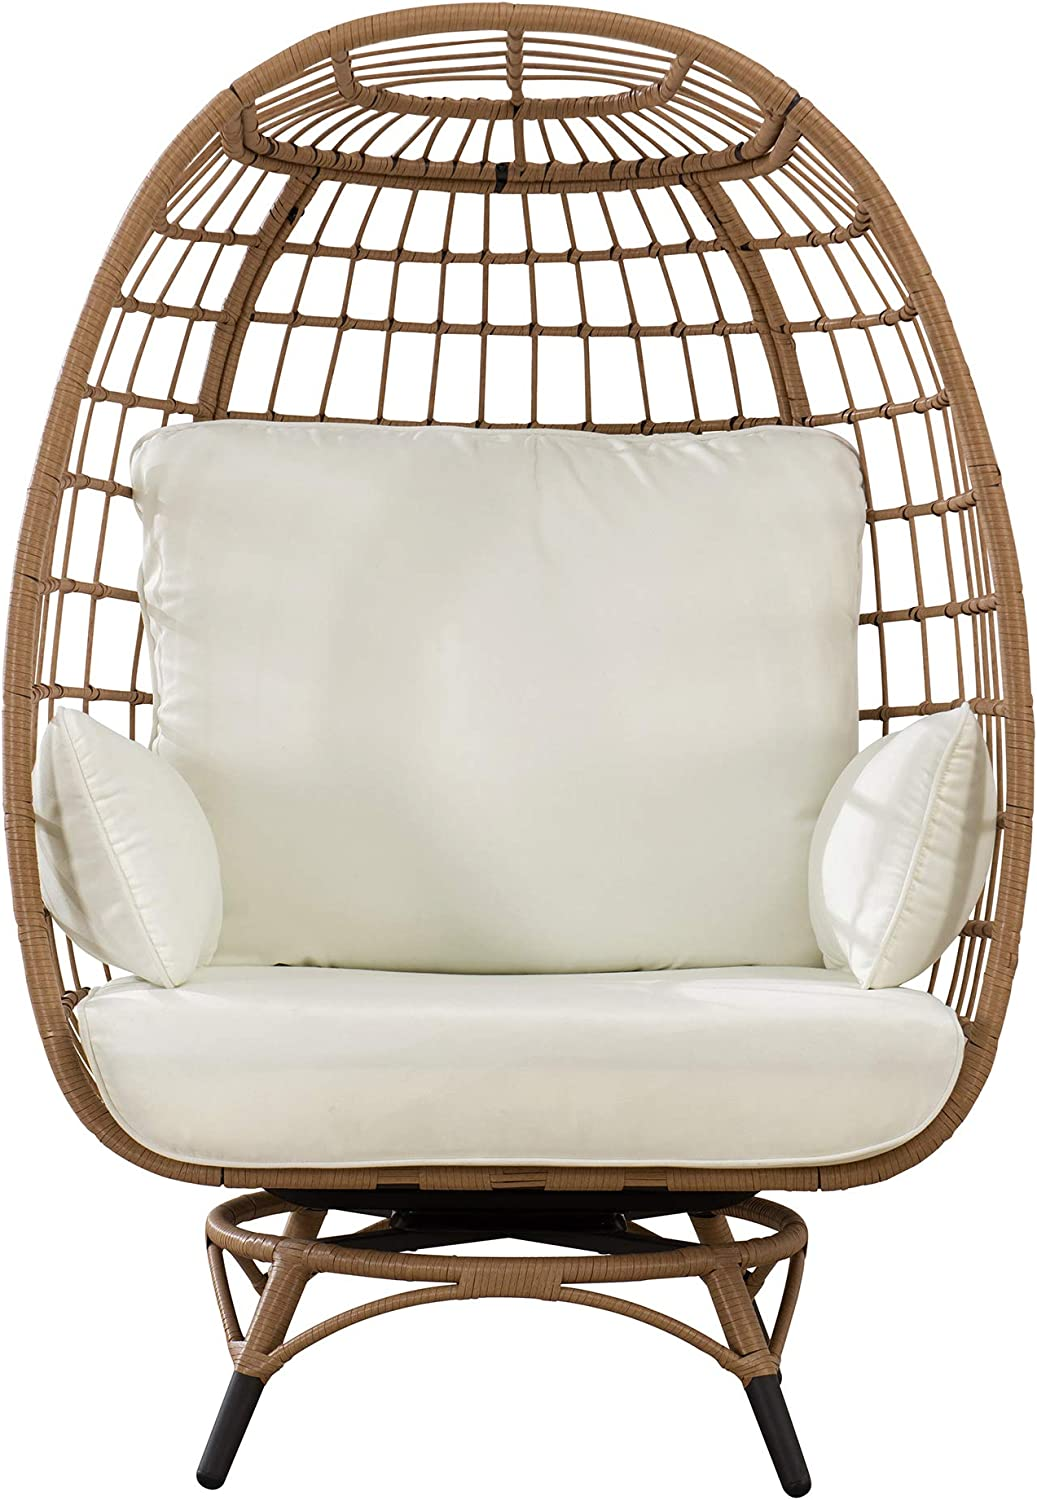 Sunjoy Simon Swivel Egg Cuddle Chair, Light Brown